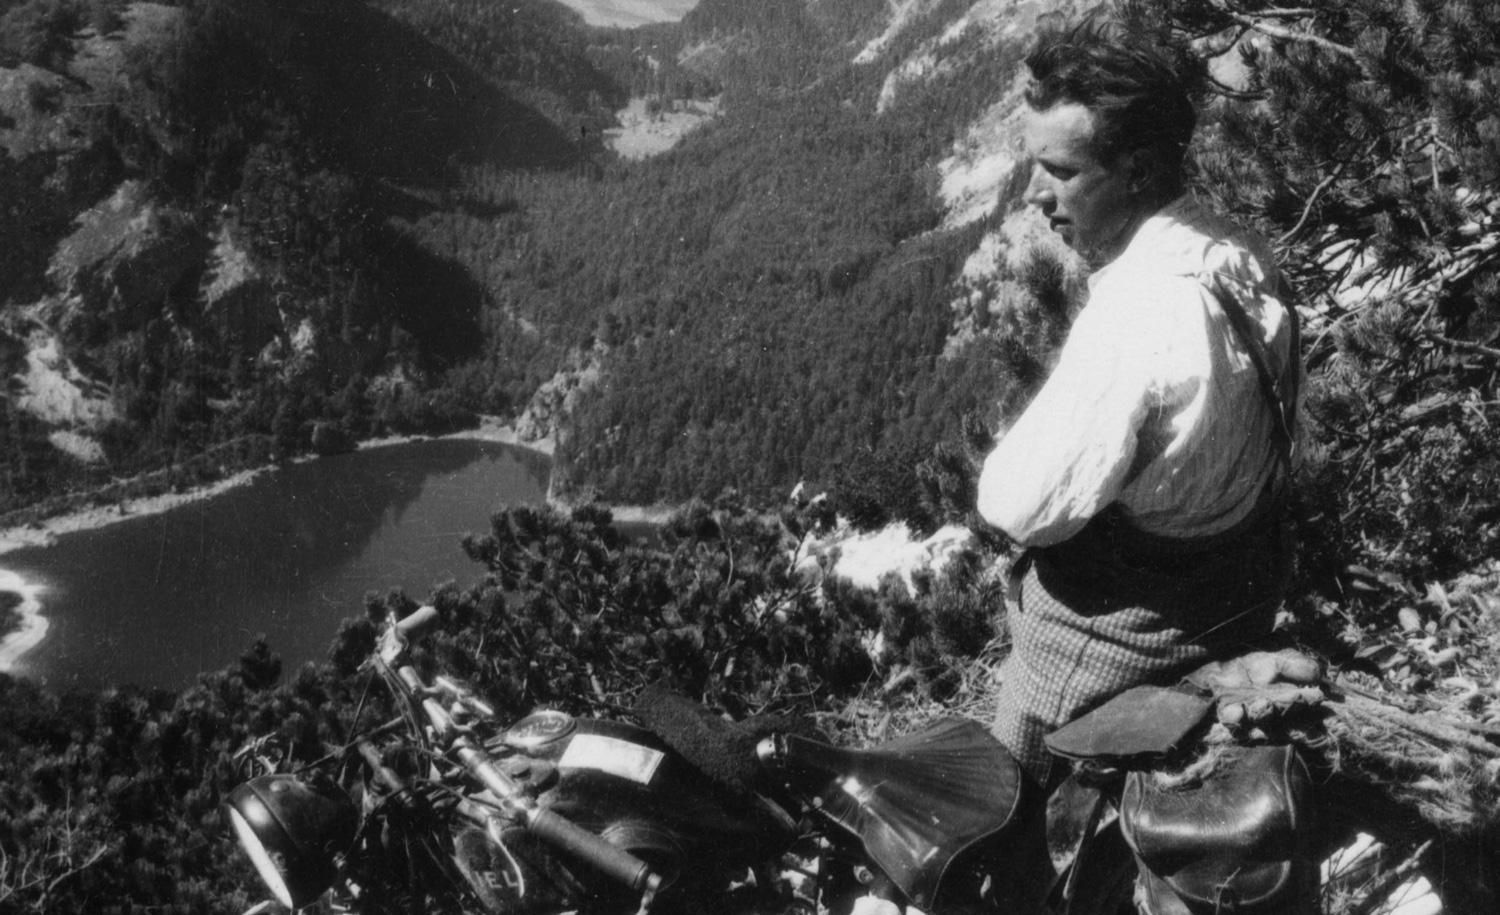 A resting motorcyclist above the three Lakes Gosauer in Austria around 1935. Imagno/Getty Images.